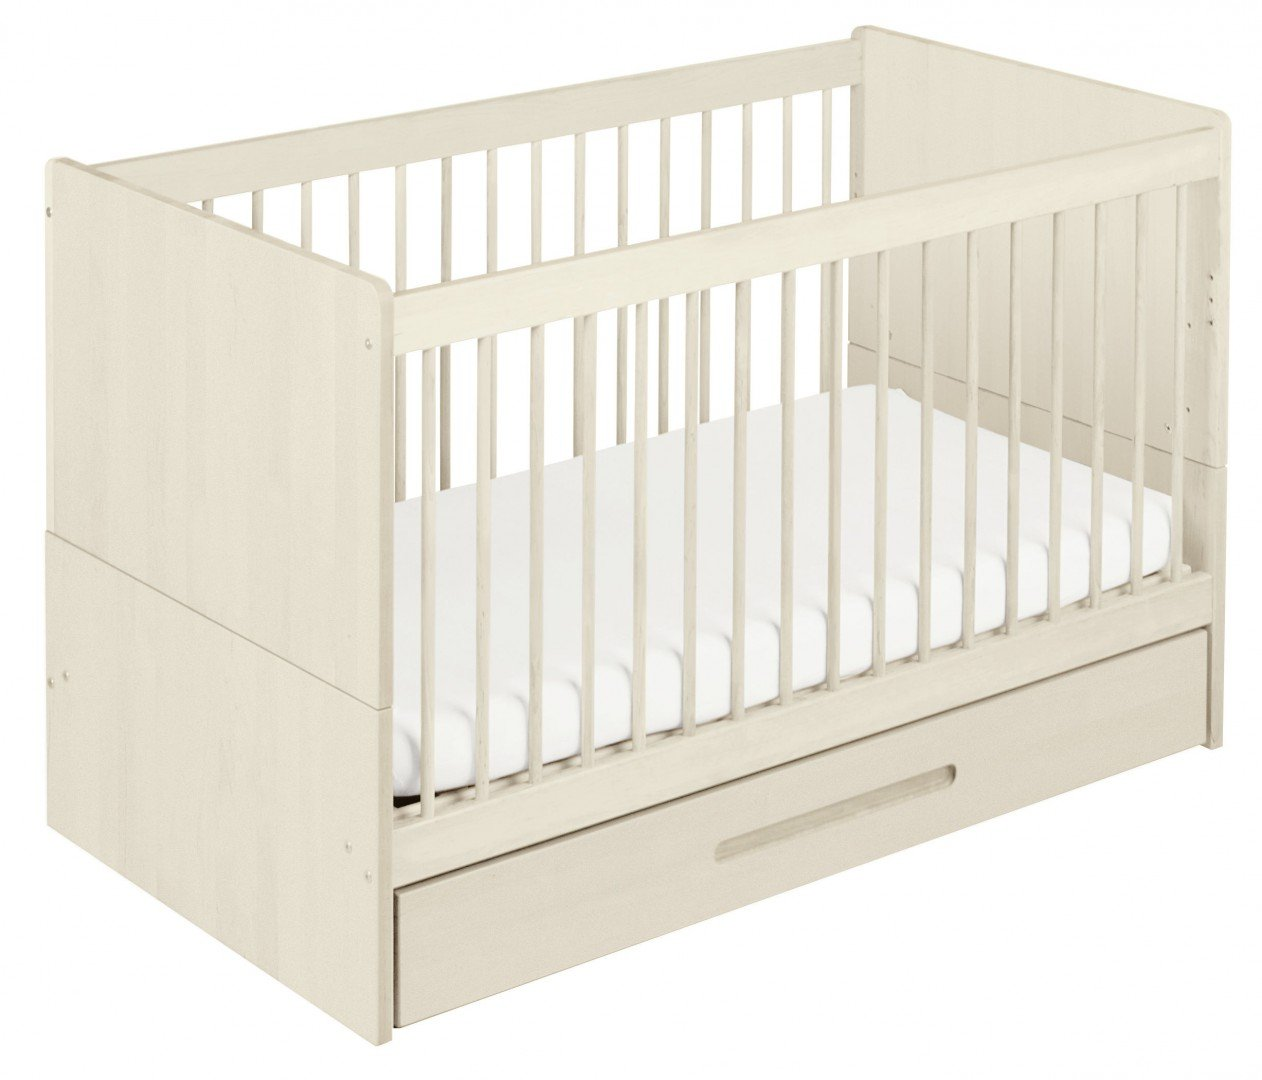 BioKinder 22600 Lina babybed cot 70x140 cm. Biological massive wood Bio-Kinder Babybed cot Lina Sustainable solid wood. Biological finish. Individually handcrafted by professional carpenters Surface W 70 cm, L 140 cm. Outward measurement L 150 cm, W 77 cm, H 90 cm. 3